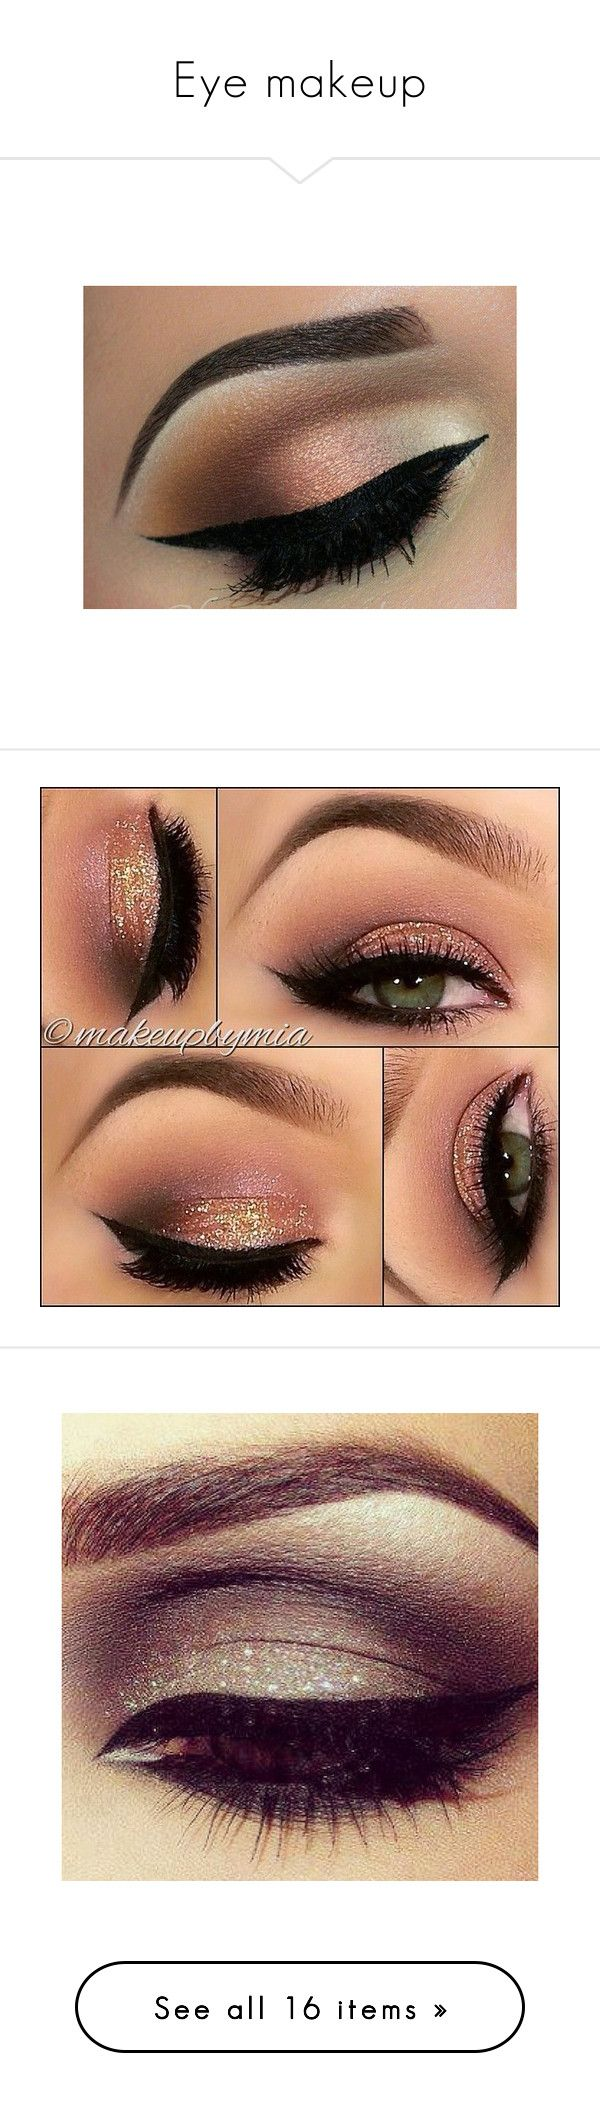 """Eye makeup"" by b-yonce ❤ liked on Polyvore featuring eyes, makeup, beauty products, eye makeup, eyeshadow, beauty, make, lips, eyeliner and eye brow makeup"